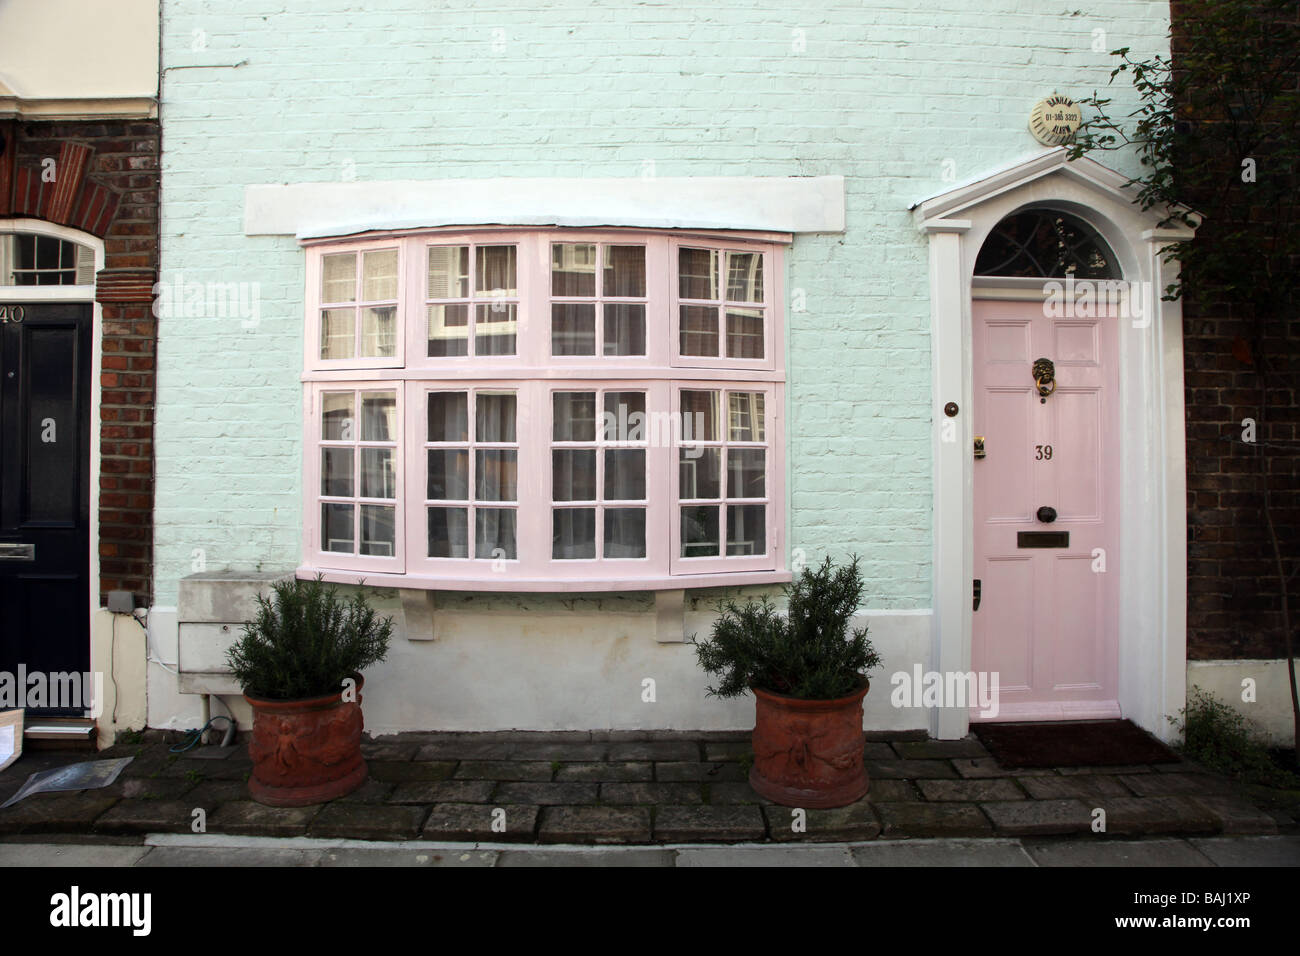 Chelsea cottage Royal Borough of Kensington Chelsea London UK - Stock Image